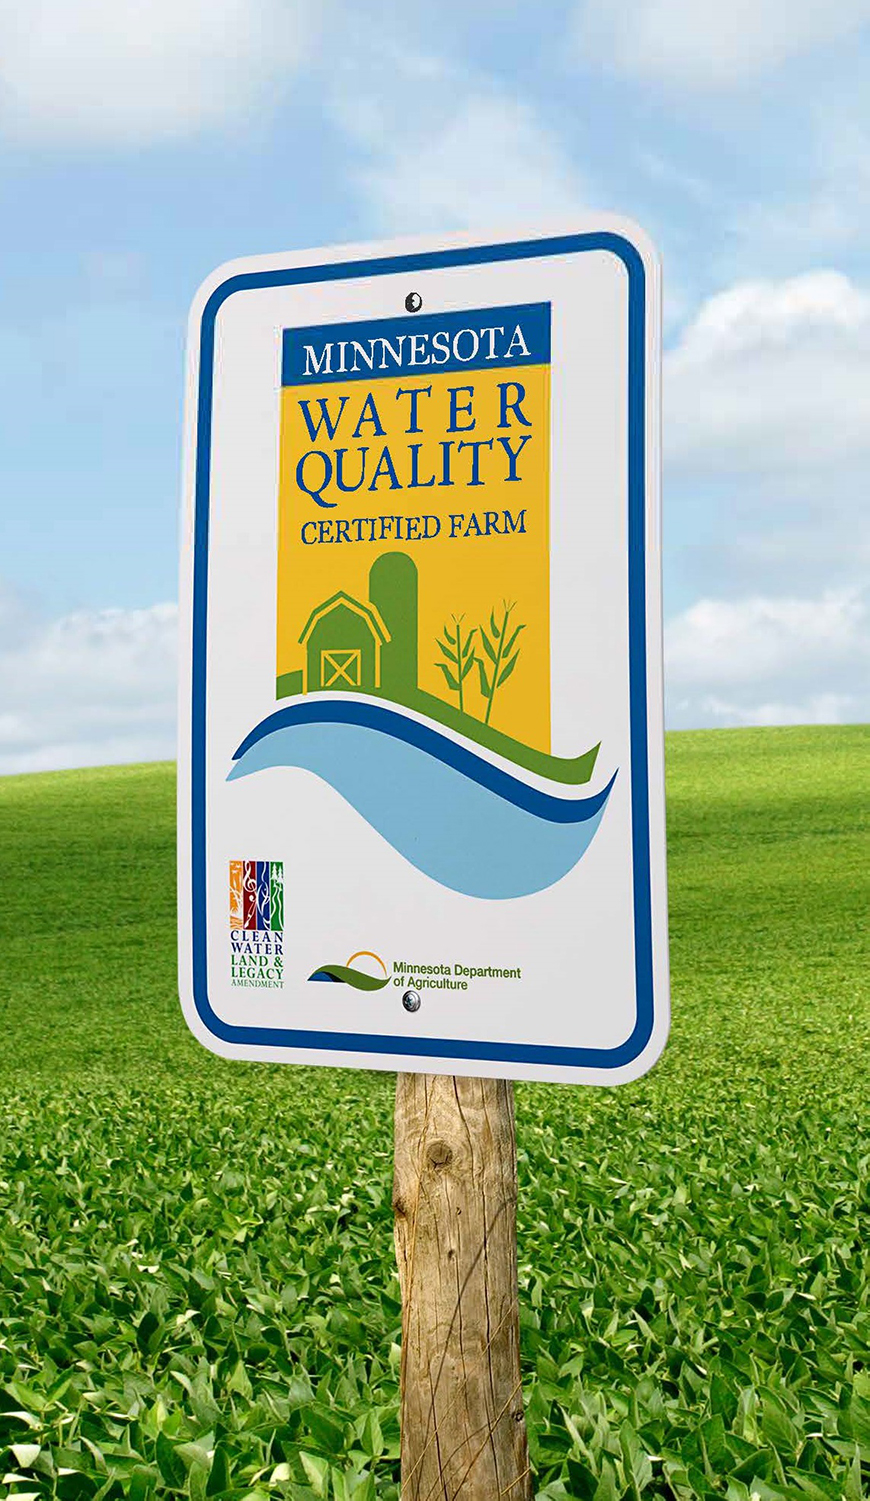 Minnesota Water Quality sign